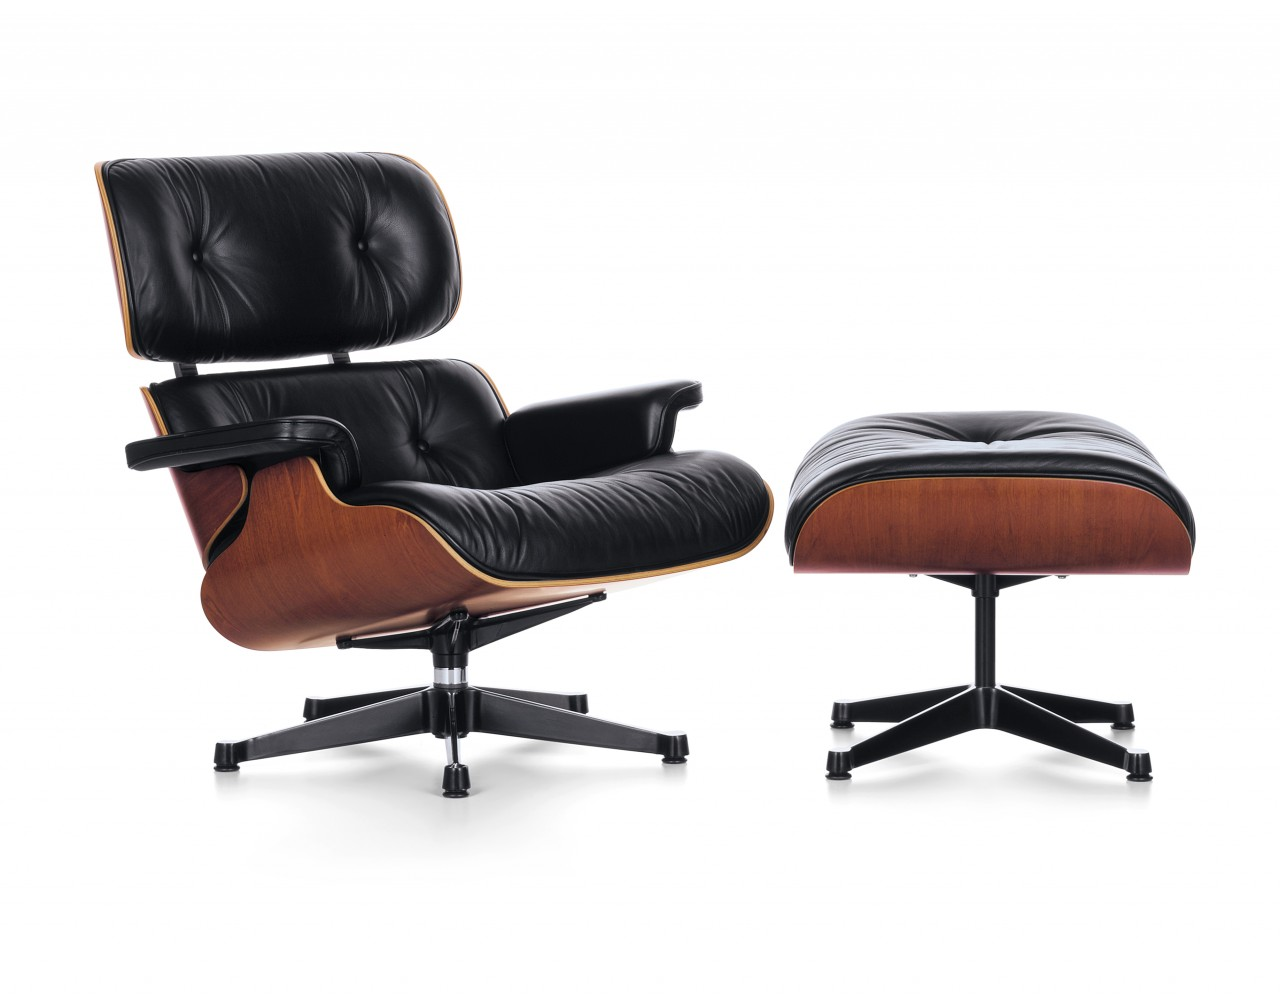 Designers - Charles and Ray Eames